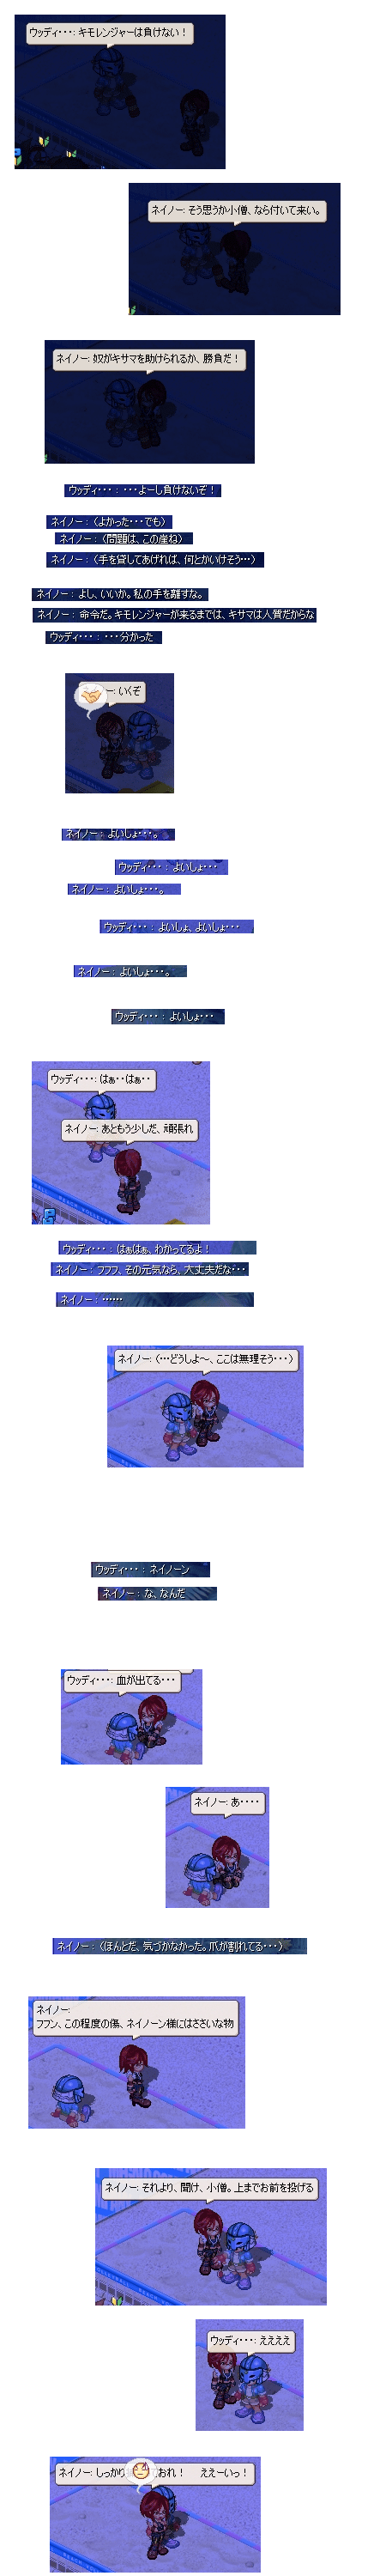 2007062522.png